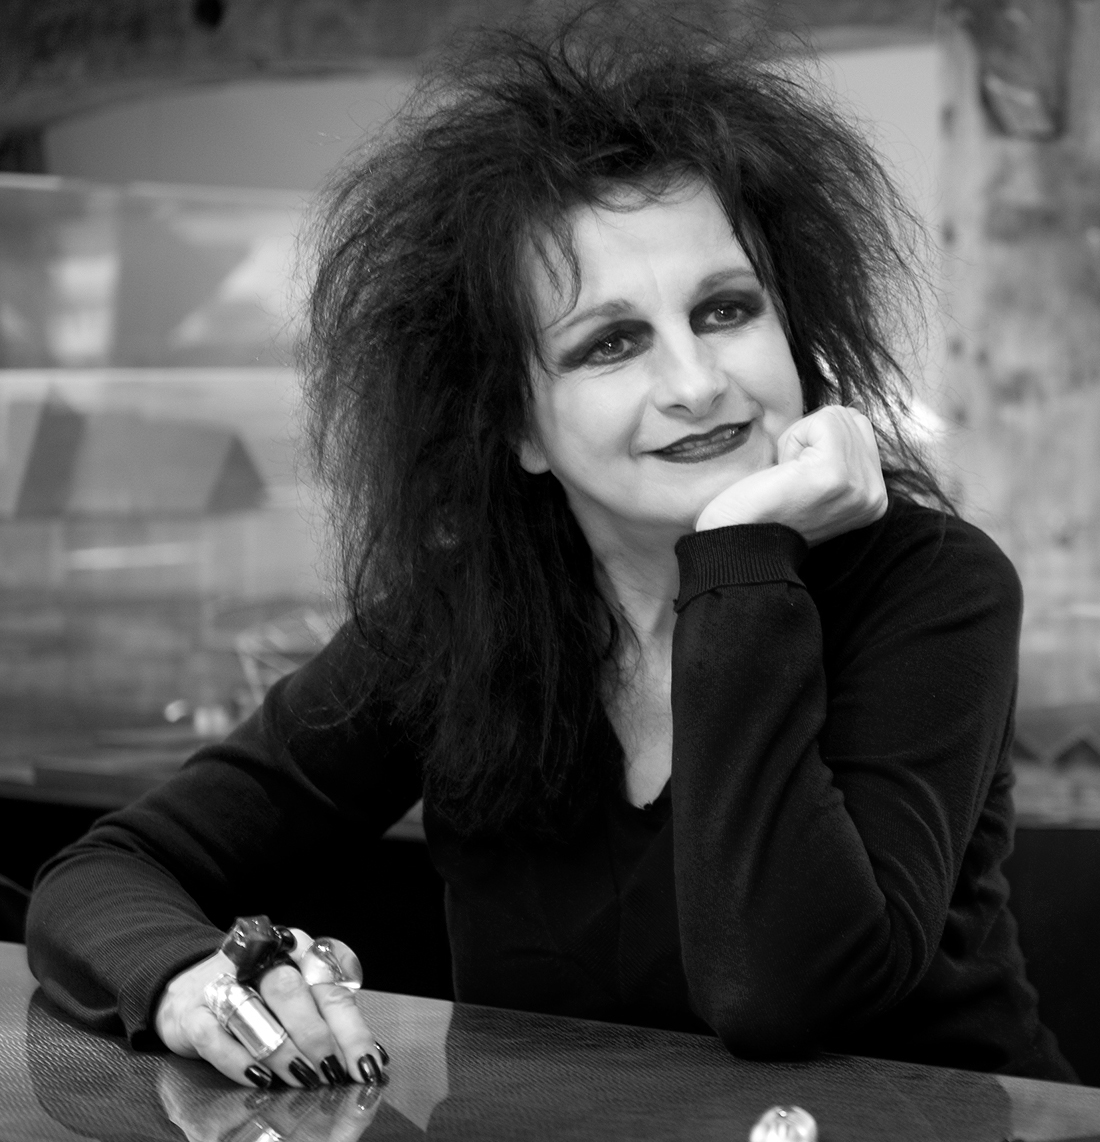 Odile DECQ - Odile Decq opened her architecture agency in 1978, just after graduating from La Villette, while at the same time she began her studies at Science Po, Paris. Then she graduated in Urban Development in 1979. By asking questions about commisions, uses, materials, the body, techniques and taste, the architecture of Odile Decq's agency offers a paradoxical outlook on our world; a mixture of tenderness and severity.